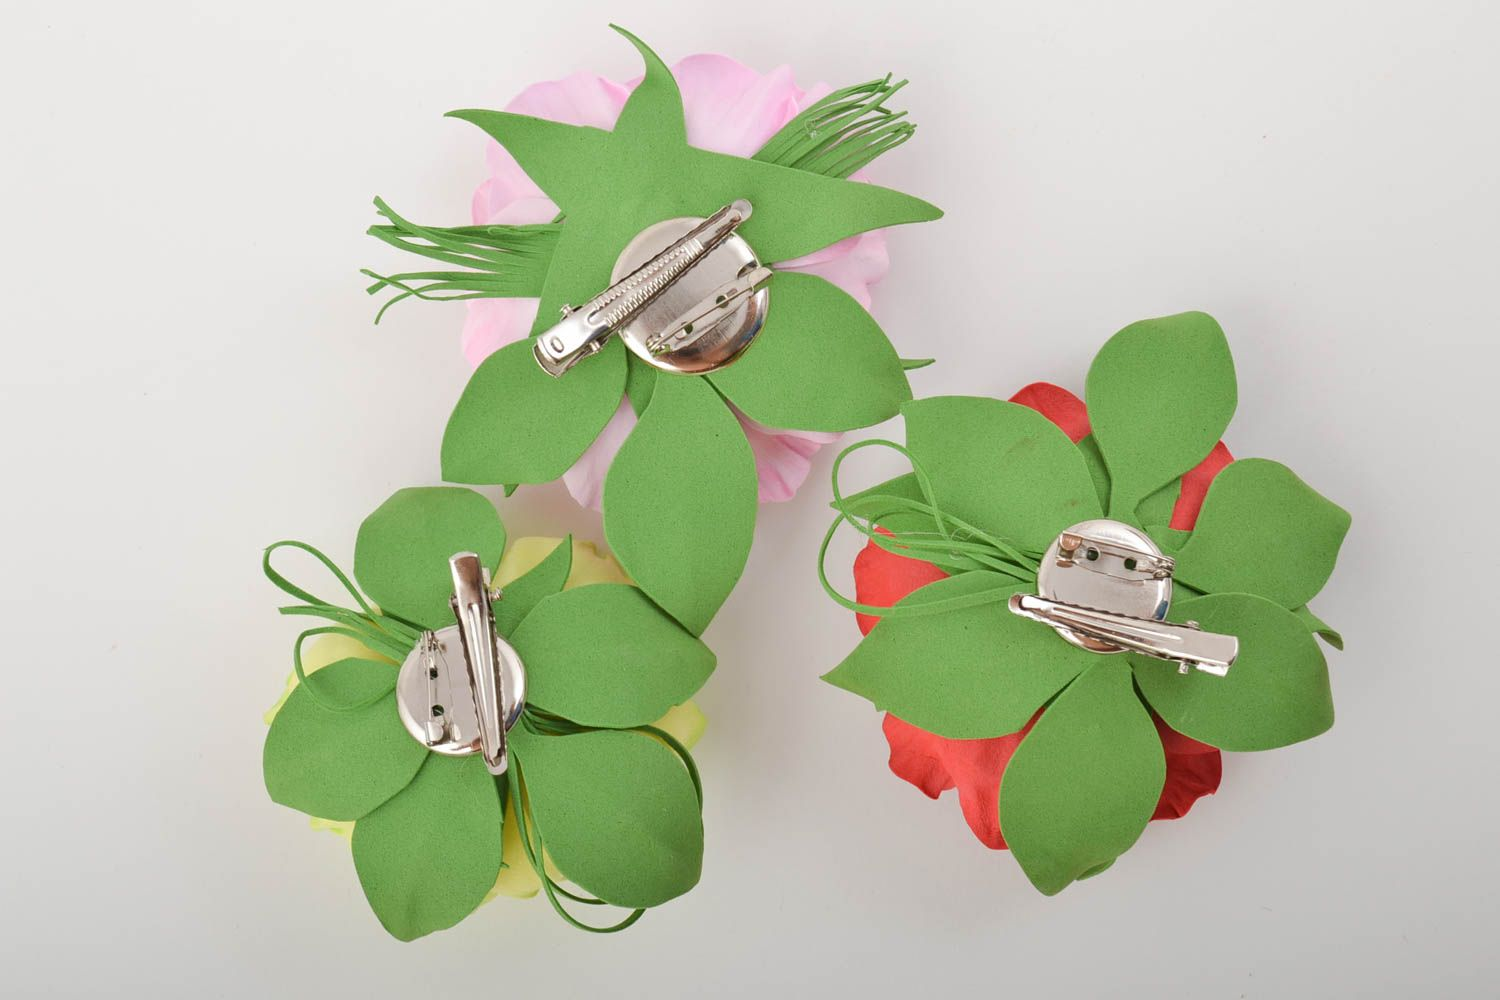 Handmade flower brooches flower hair clips handcrafted jewelry women accessories photo 8